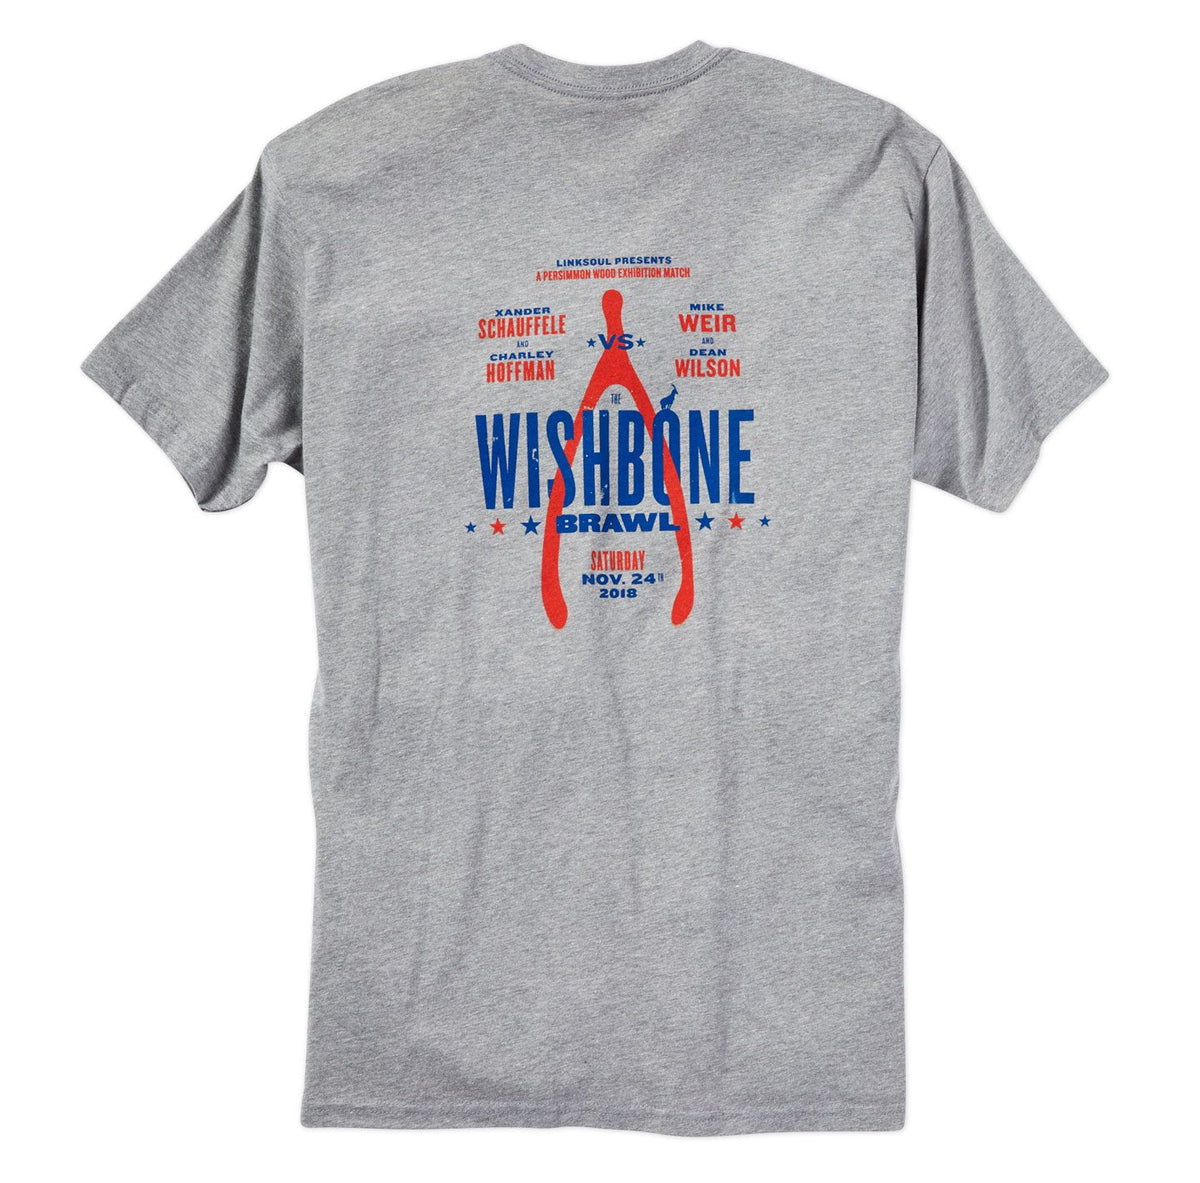 The Wishbone Tee